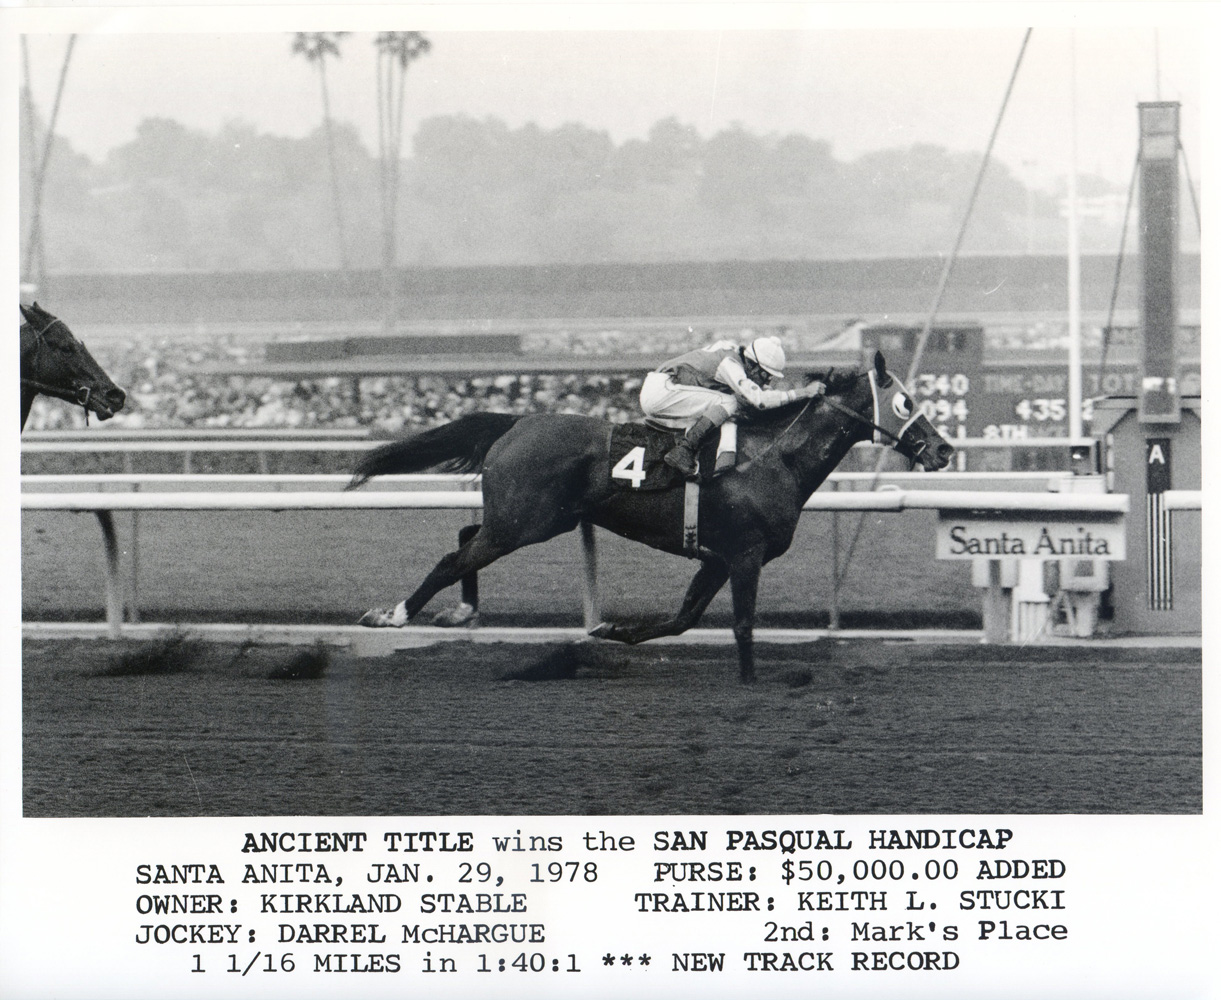 Darrel McHargue and Ancient Title winning the 1978 San Pasqual Handicap at Santa Anita and setting a new track record (Bill Mochon/Museum Collection)